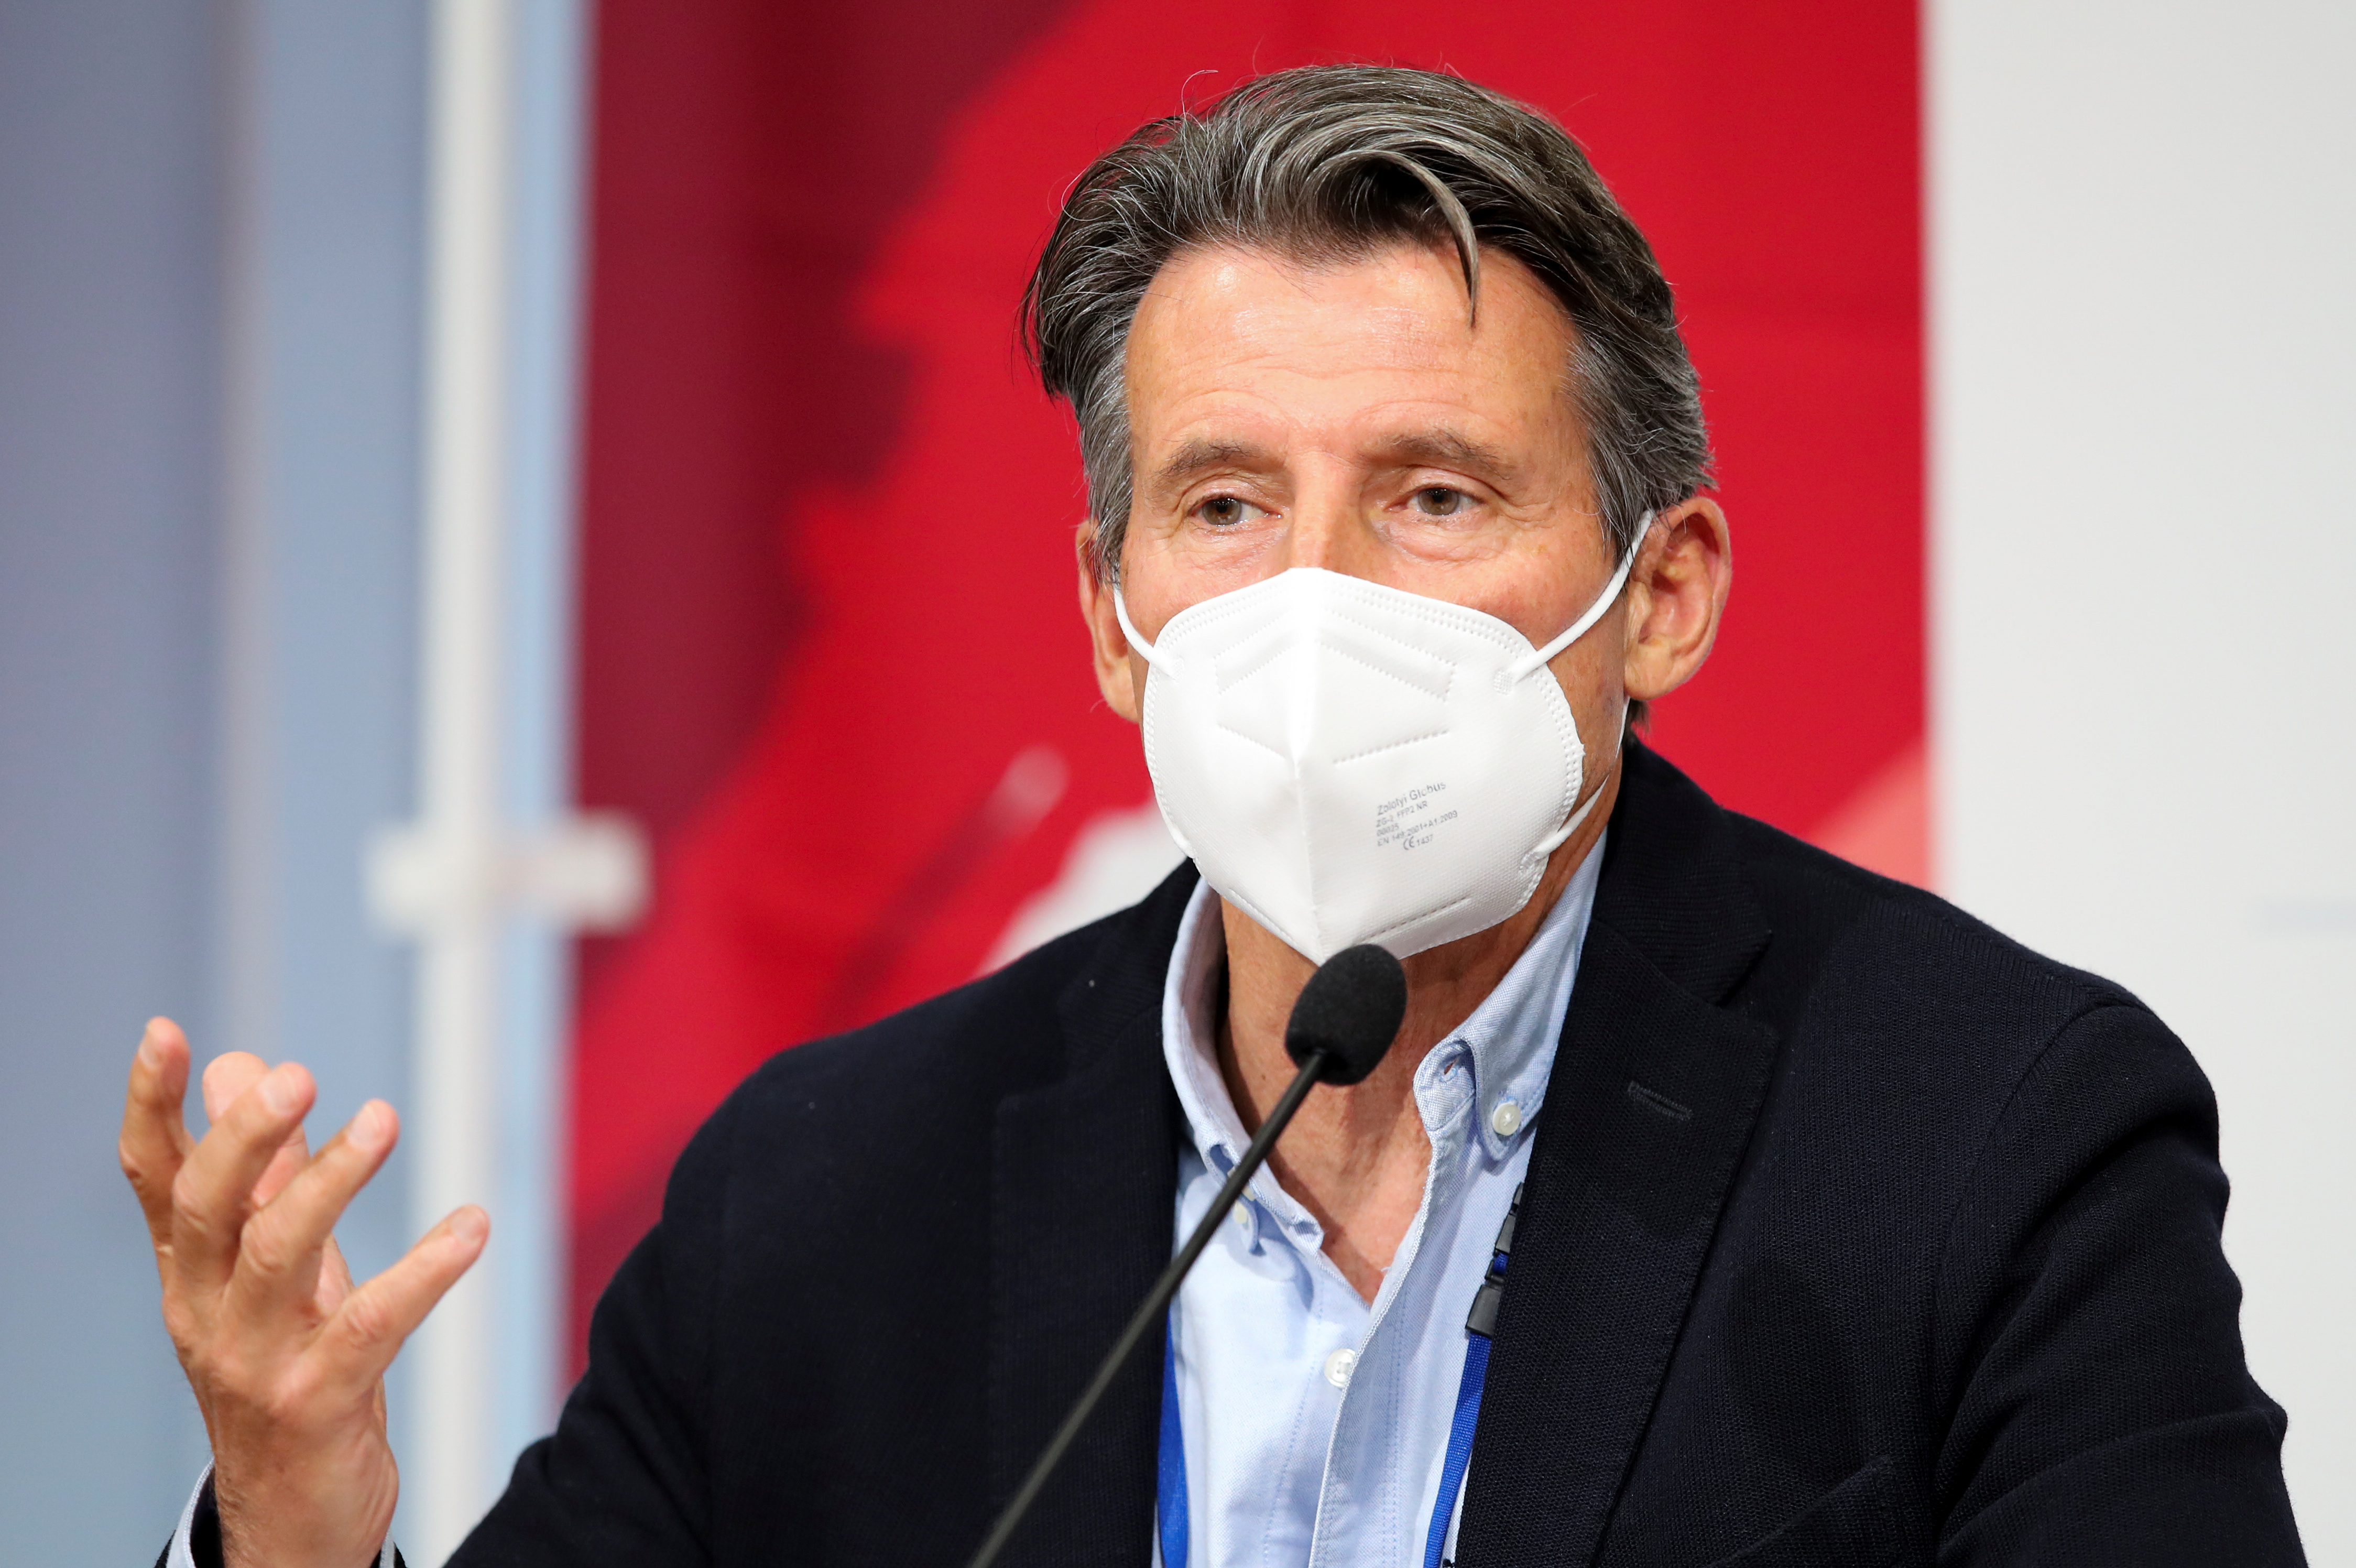 World Athletics President Sebastian Coe speaks to media at the Olympic Stadium during the Athletics test event for Tokyo 2020 Olympic Games in Tokyo, Japan May 9, 2021. REUTERS/Kim Kyung-Hoon